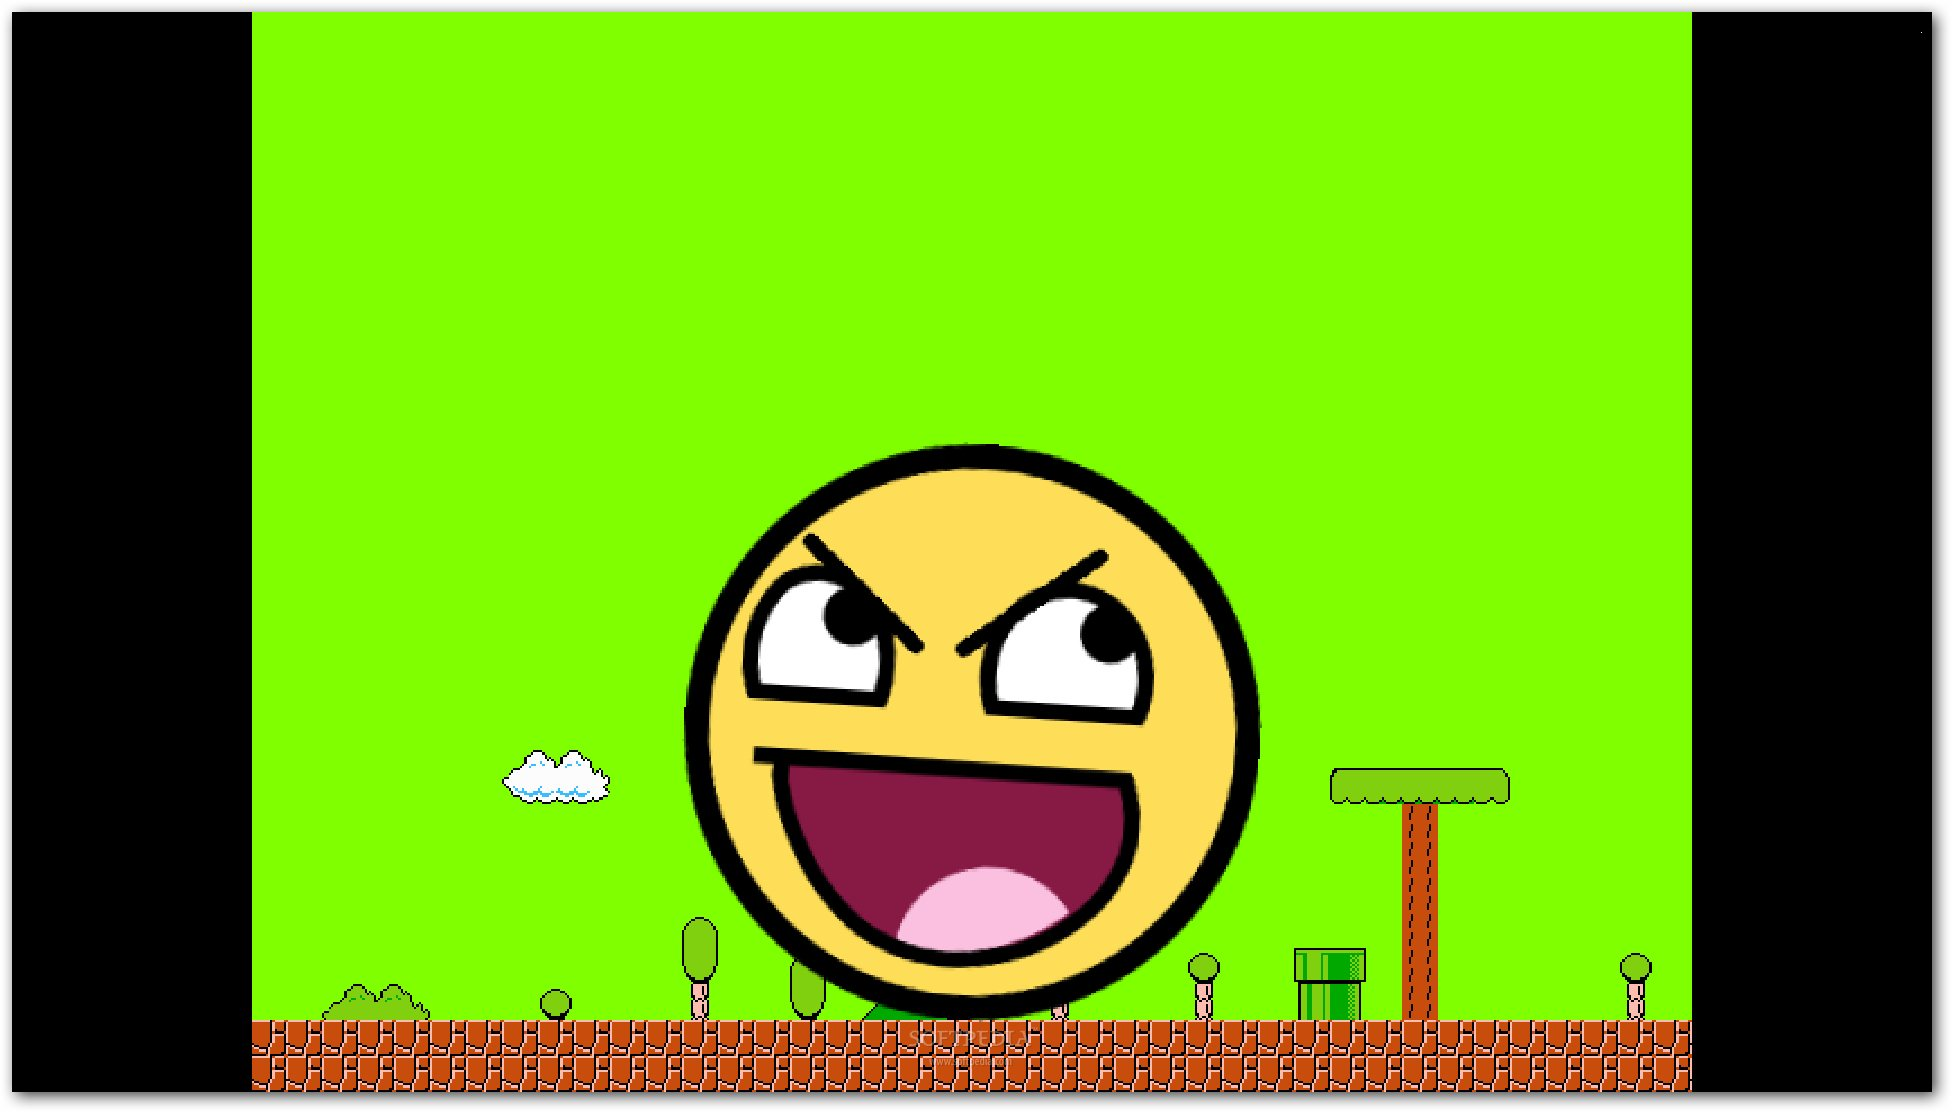 The Angry Awesome screenshot 2